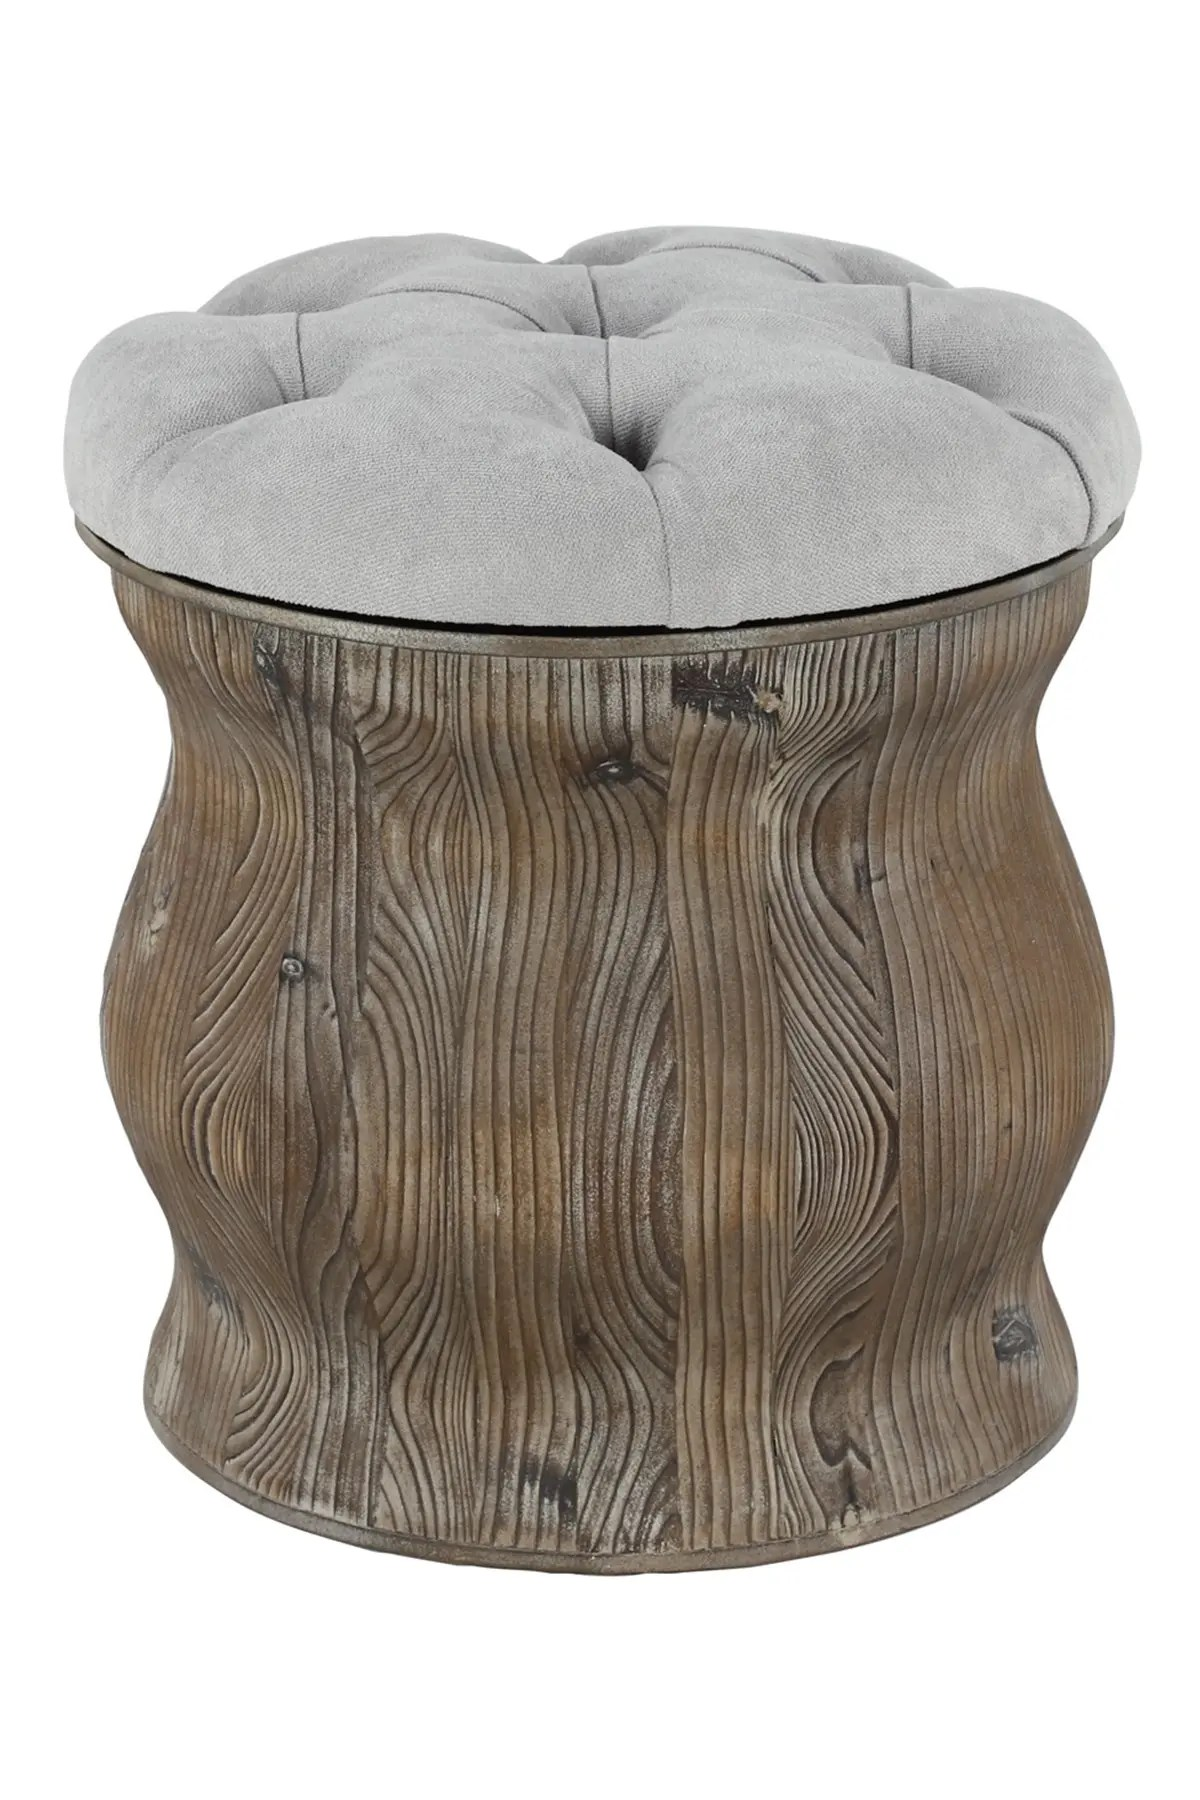 willow row rustic wood soft gray round ottoman with storage nordstrom rack